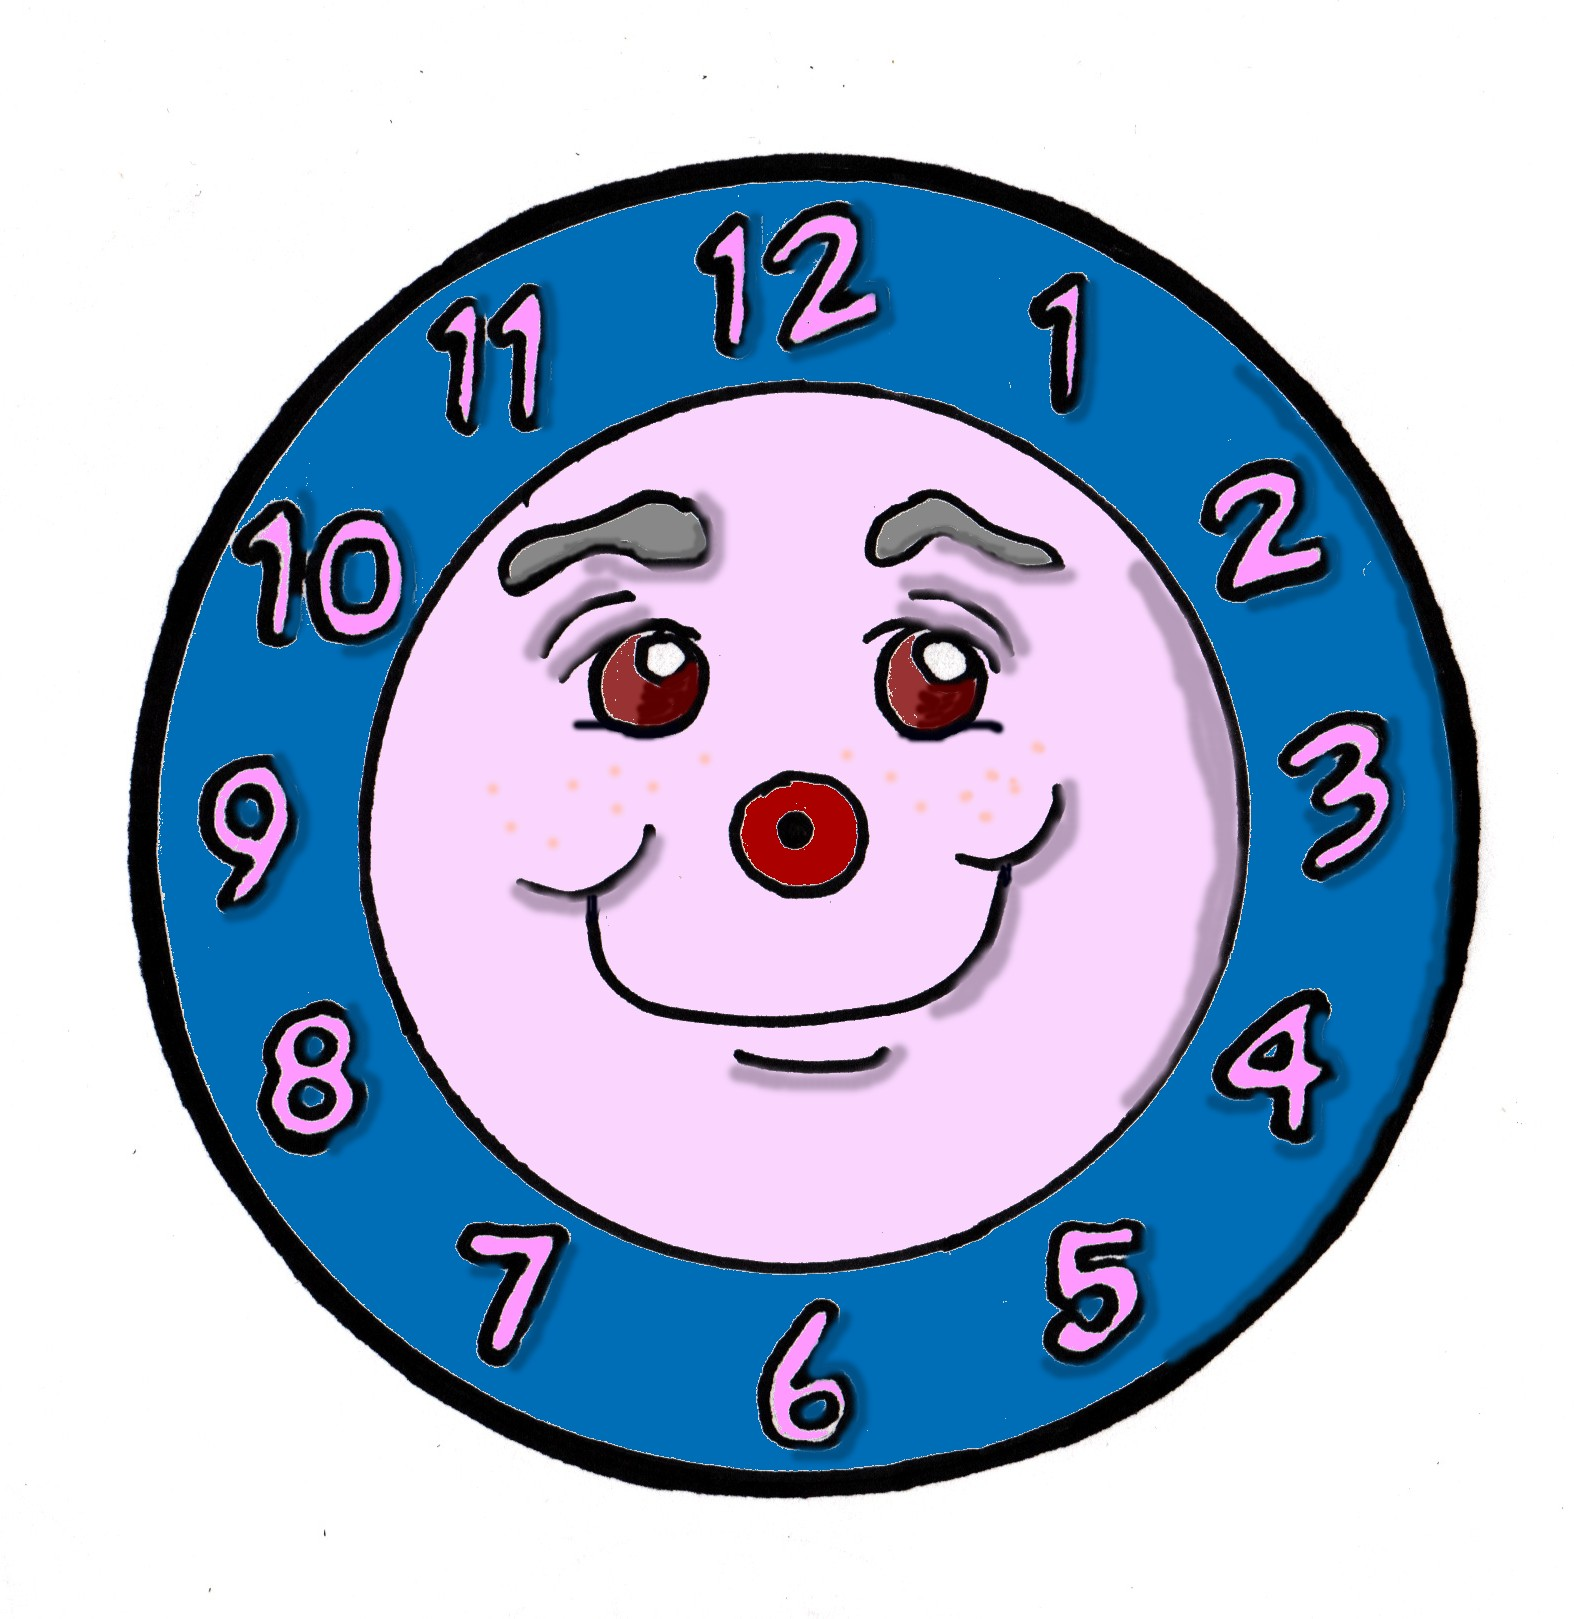 Free clipart clock face - .